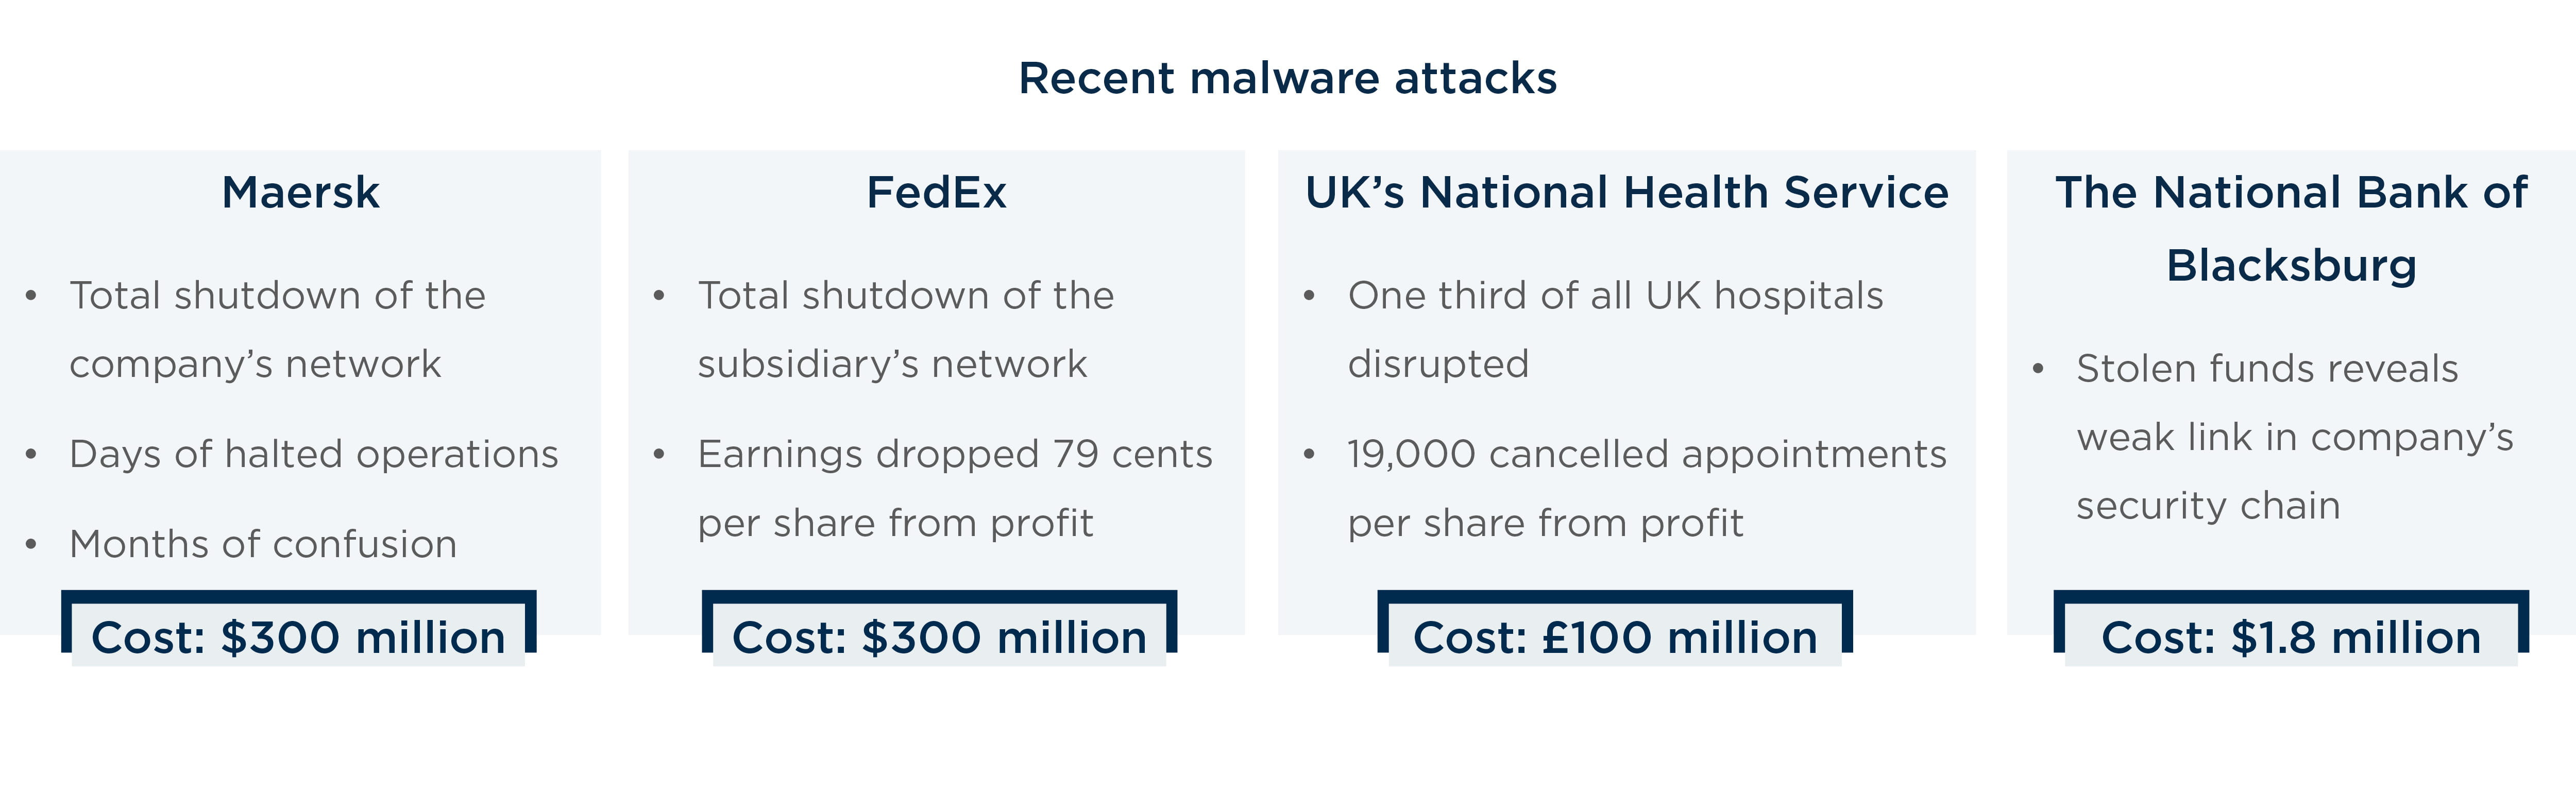 recent malware attacks